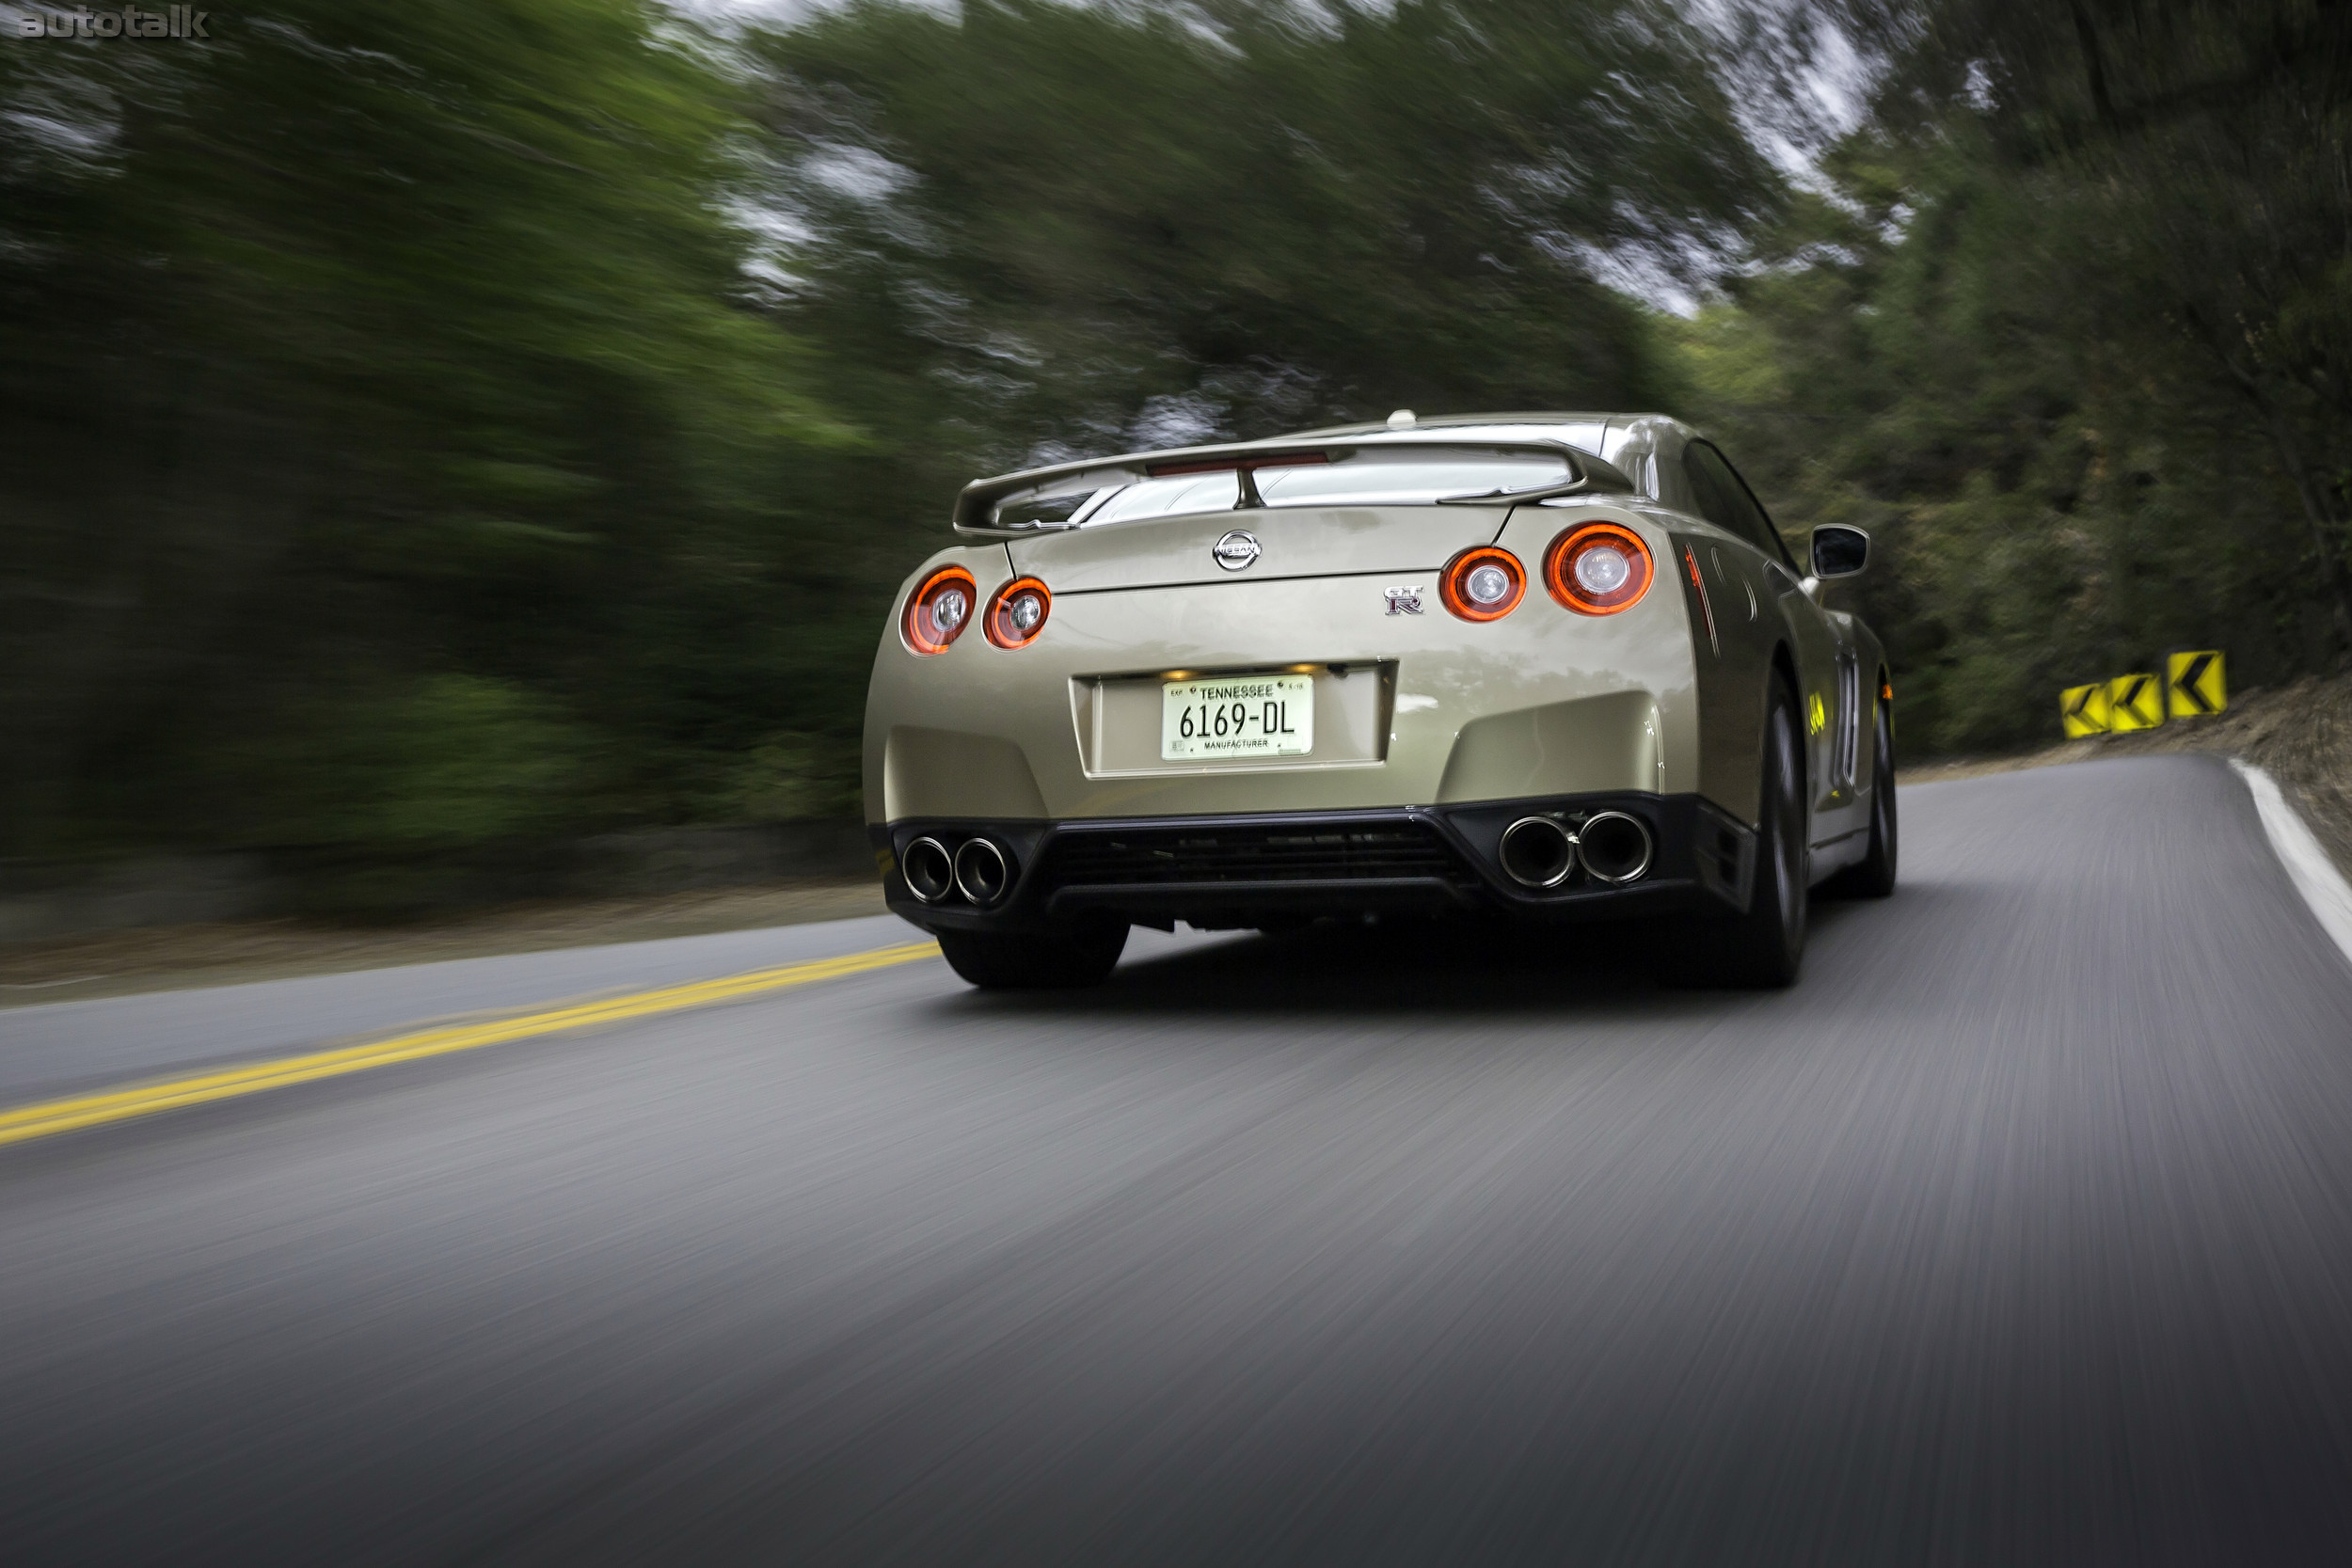 2016 Nissan GT-R 45th Anniversary Gold Edition